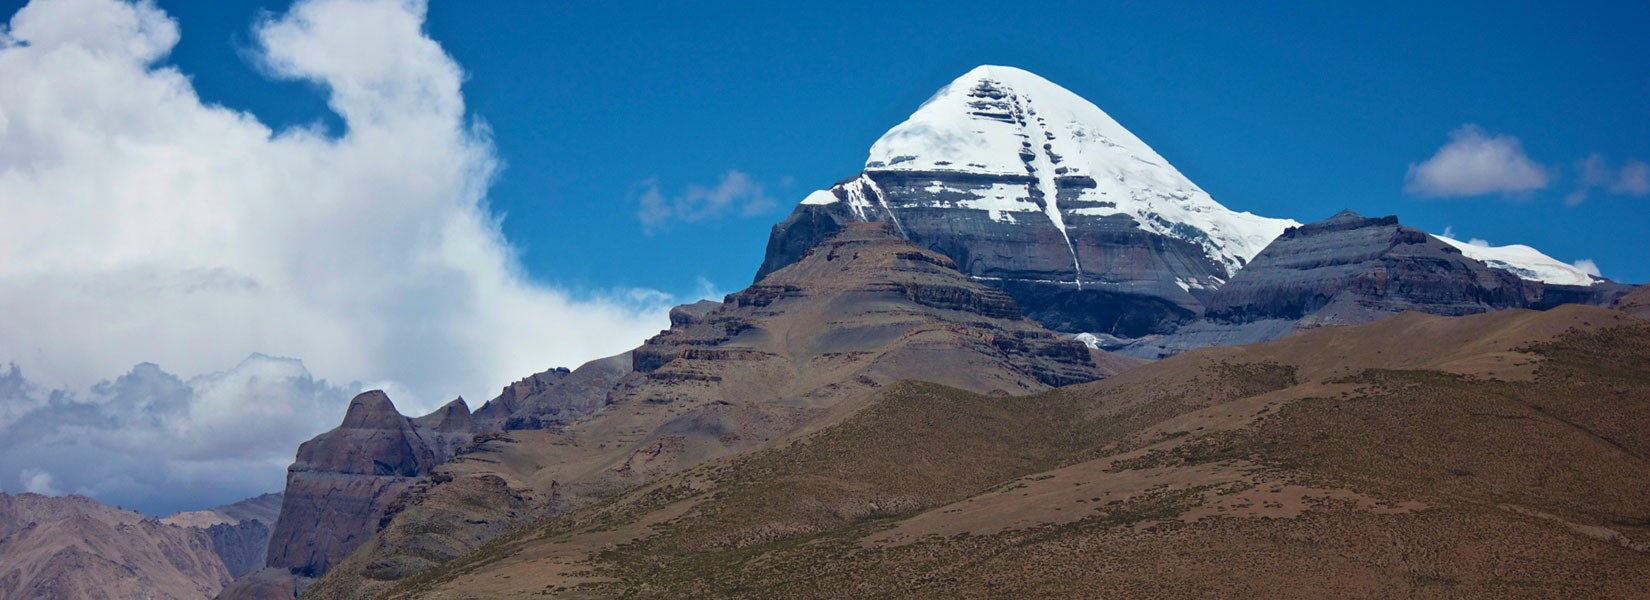 Kailash Travel Information